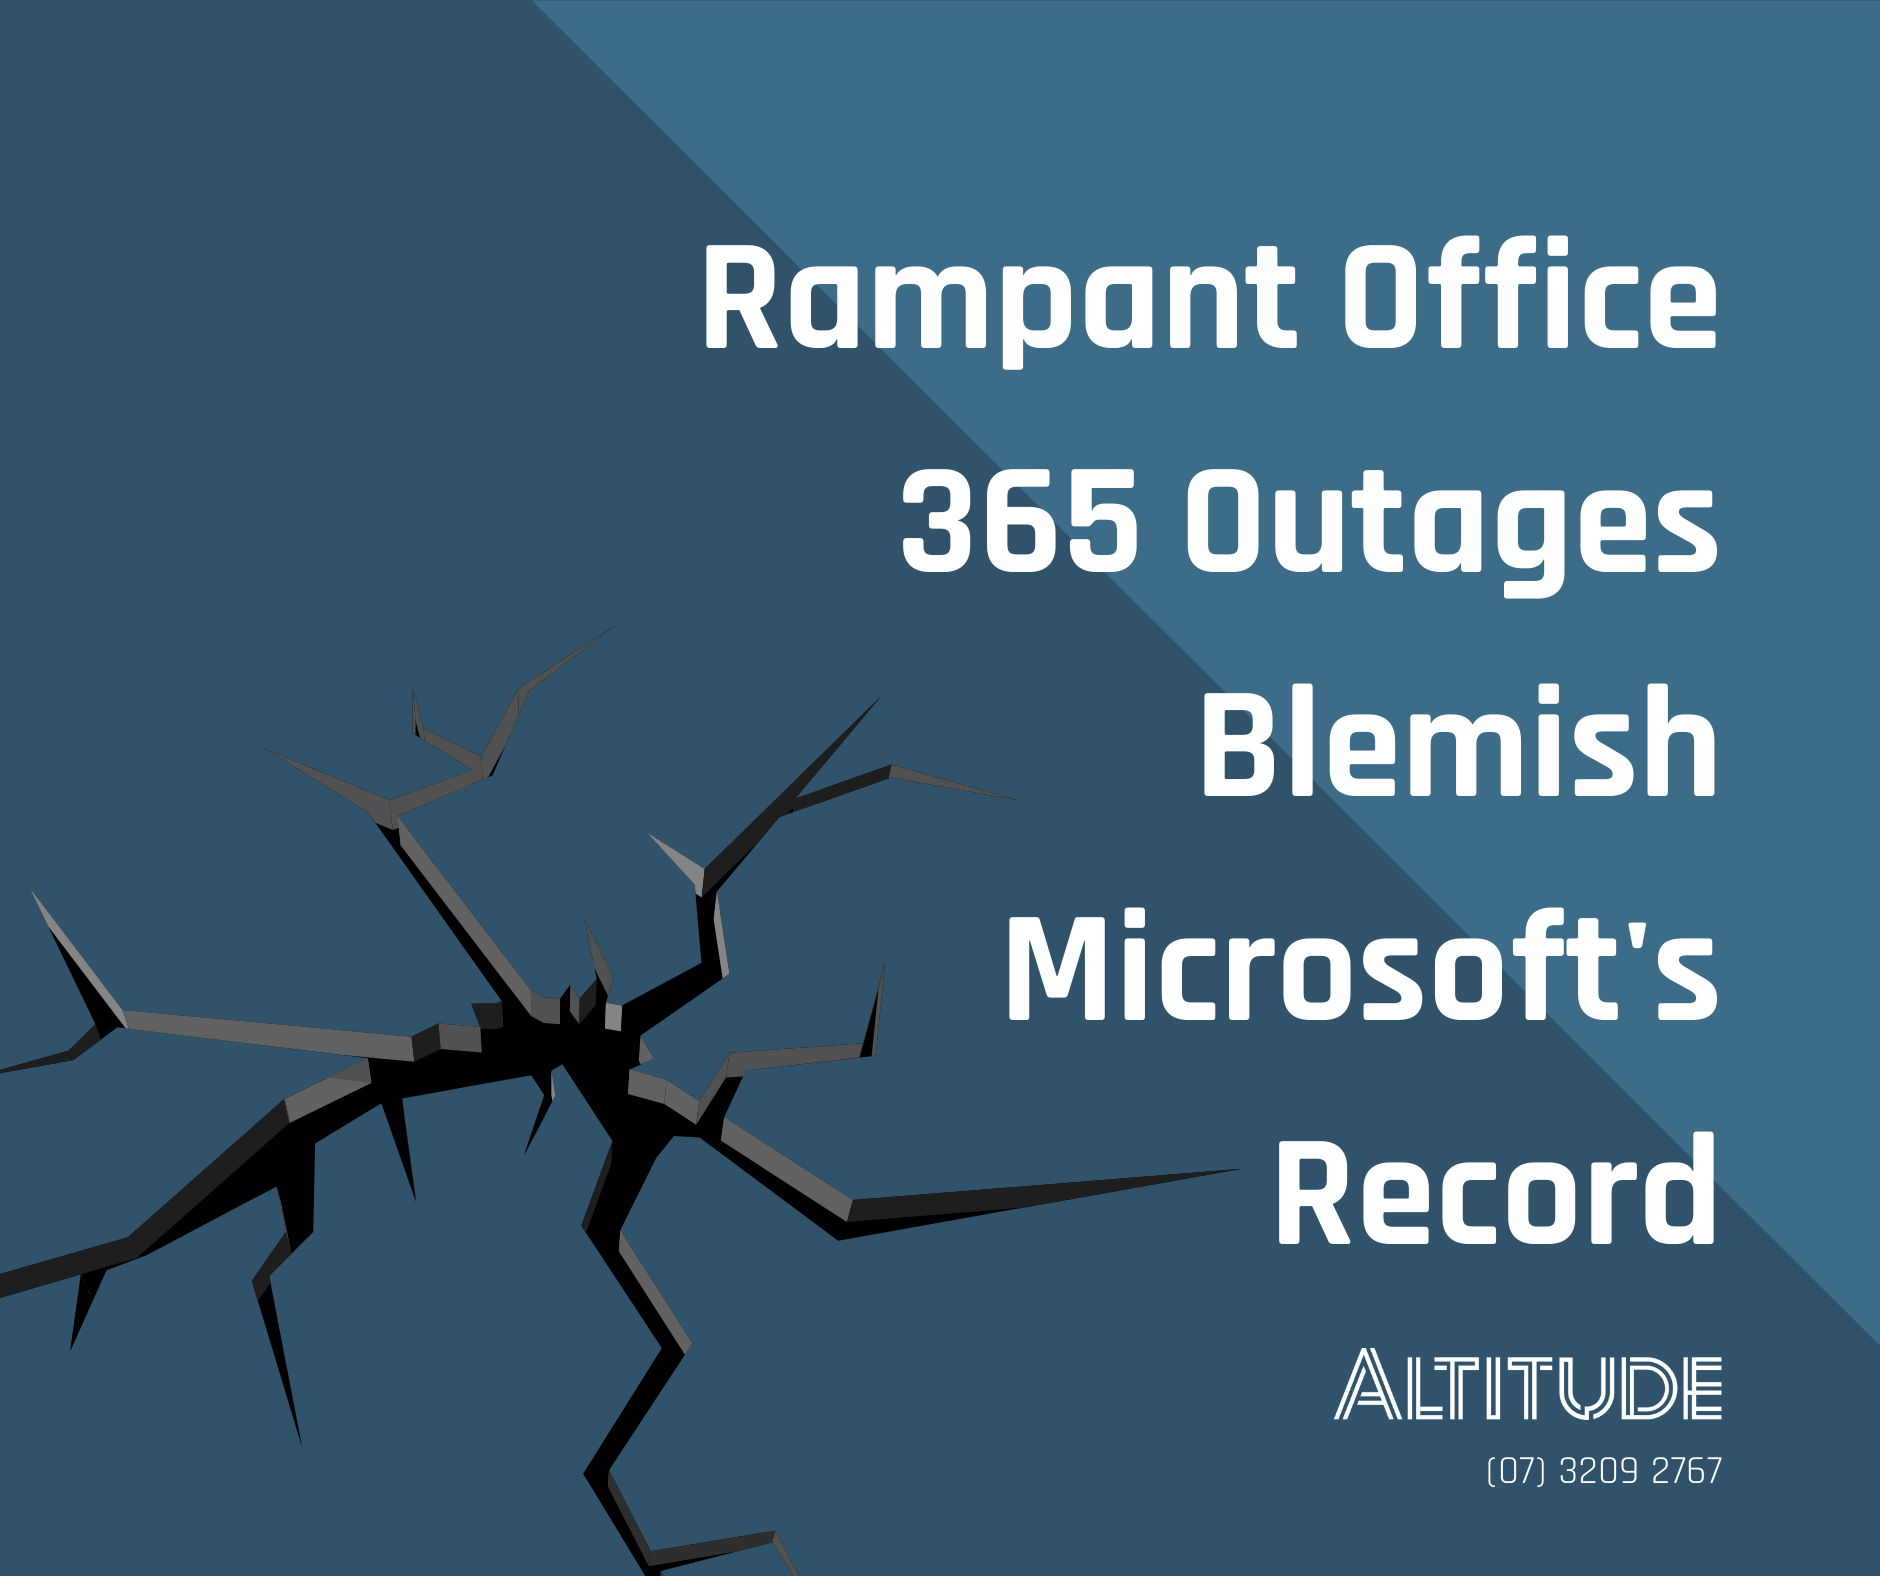 Rampant Office 365 Outages Blemish Microsoft's Record